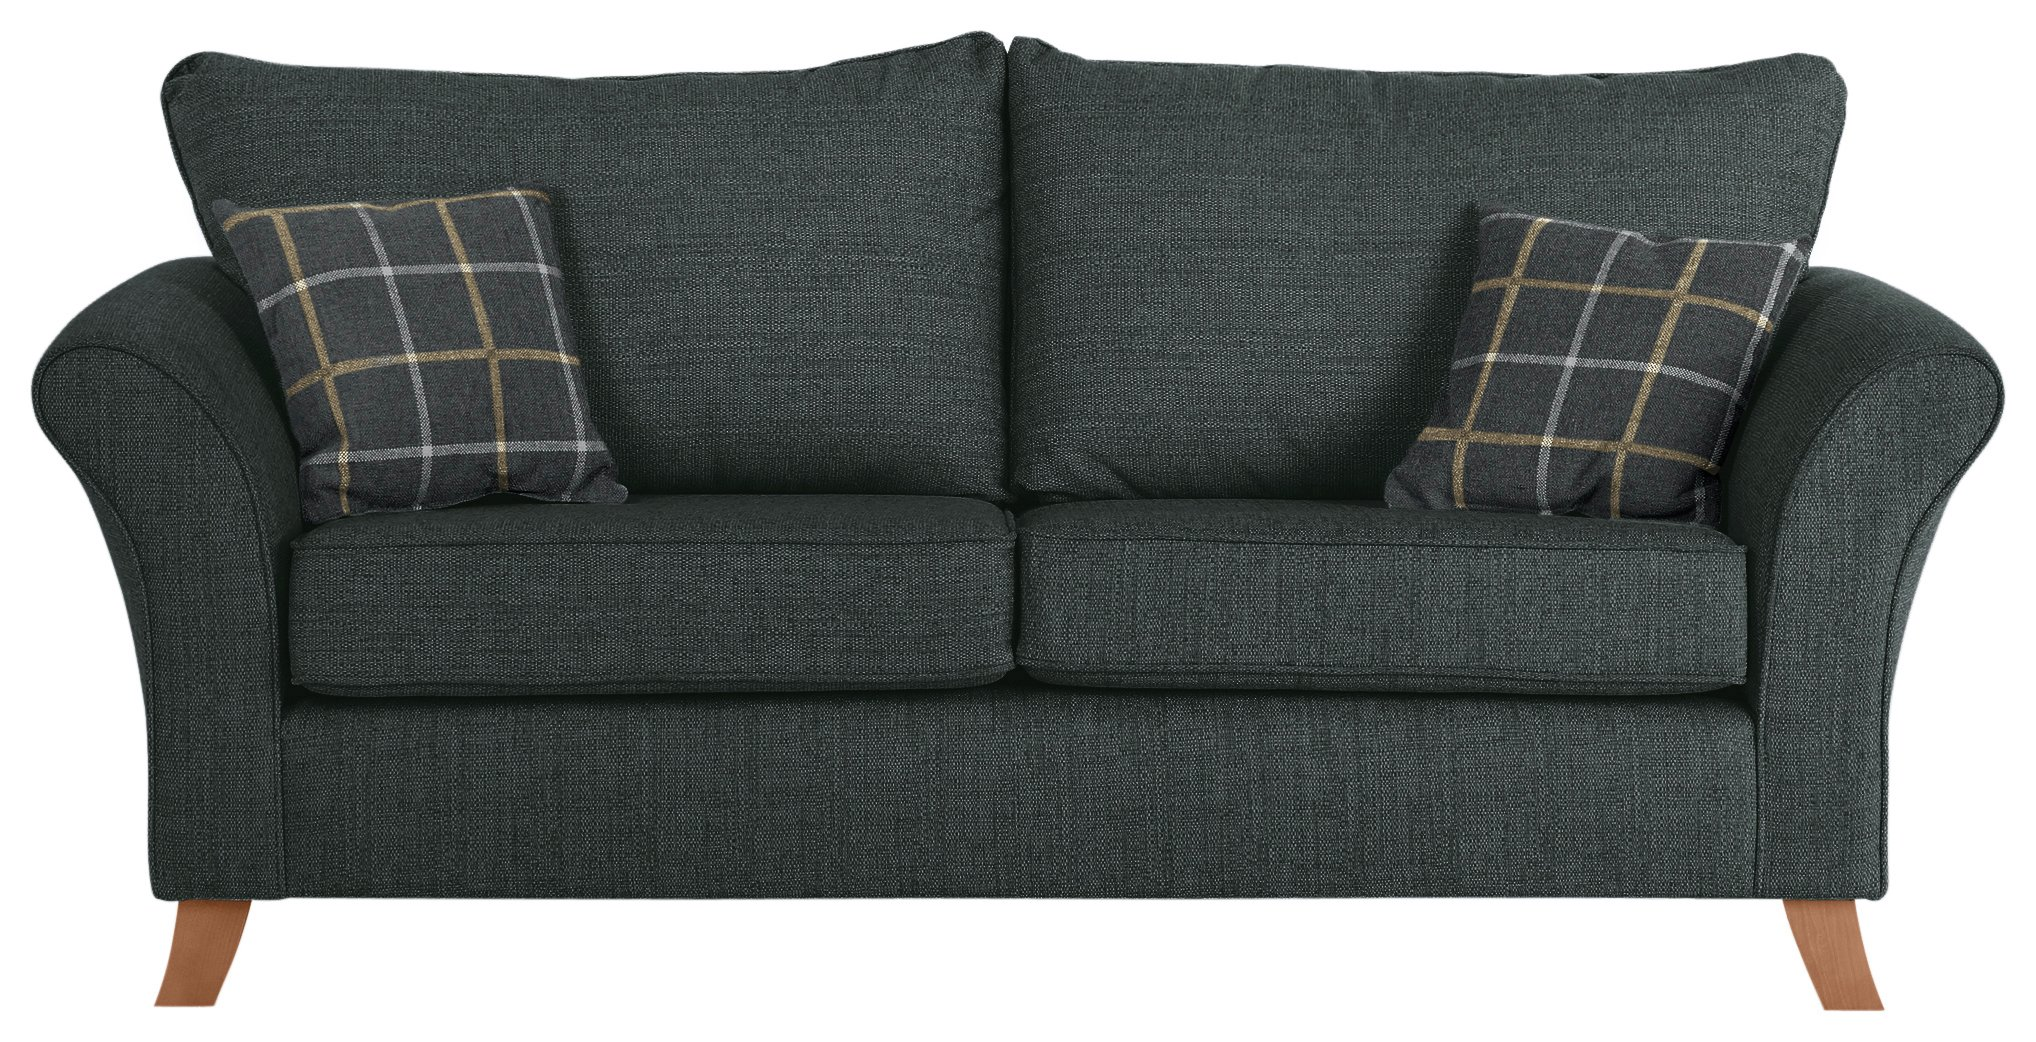 Sale On Argos Home Kayla 3 Seater High Back Fabric